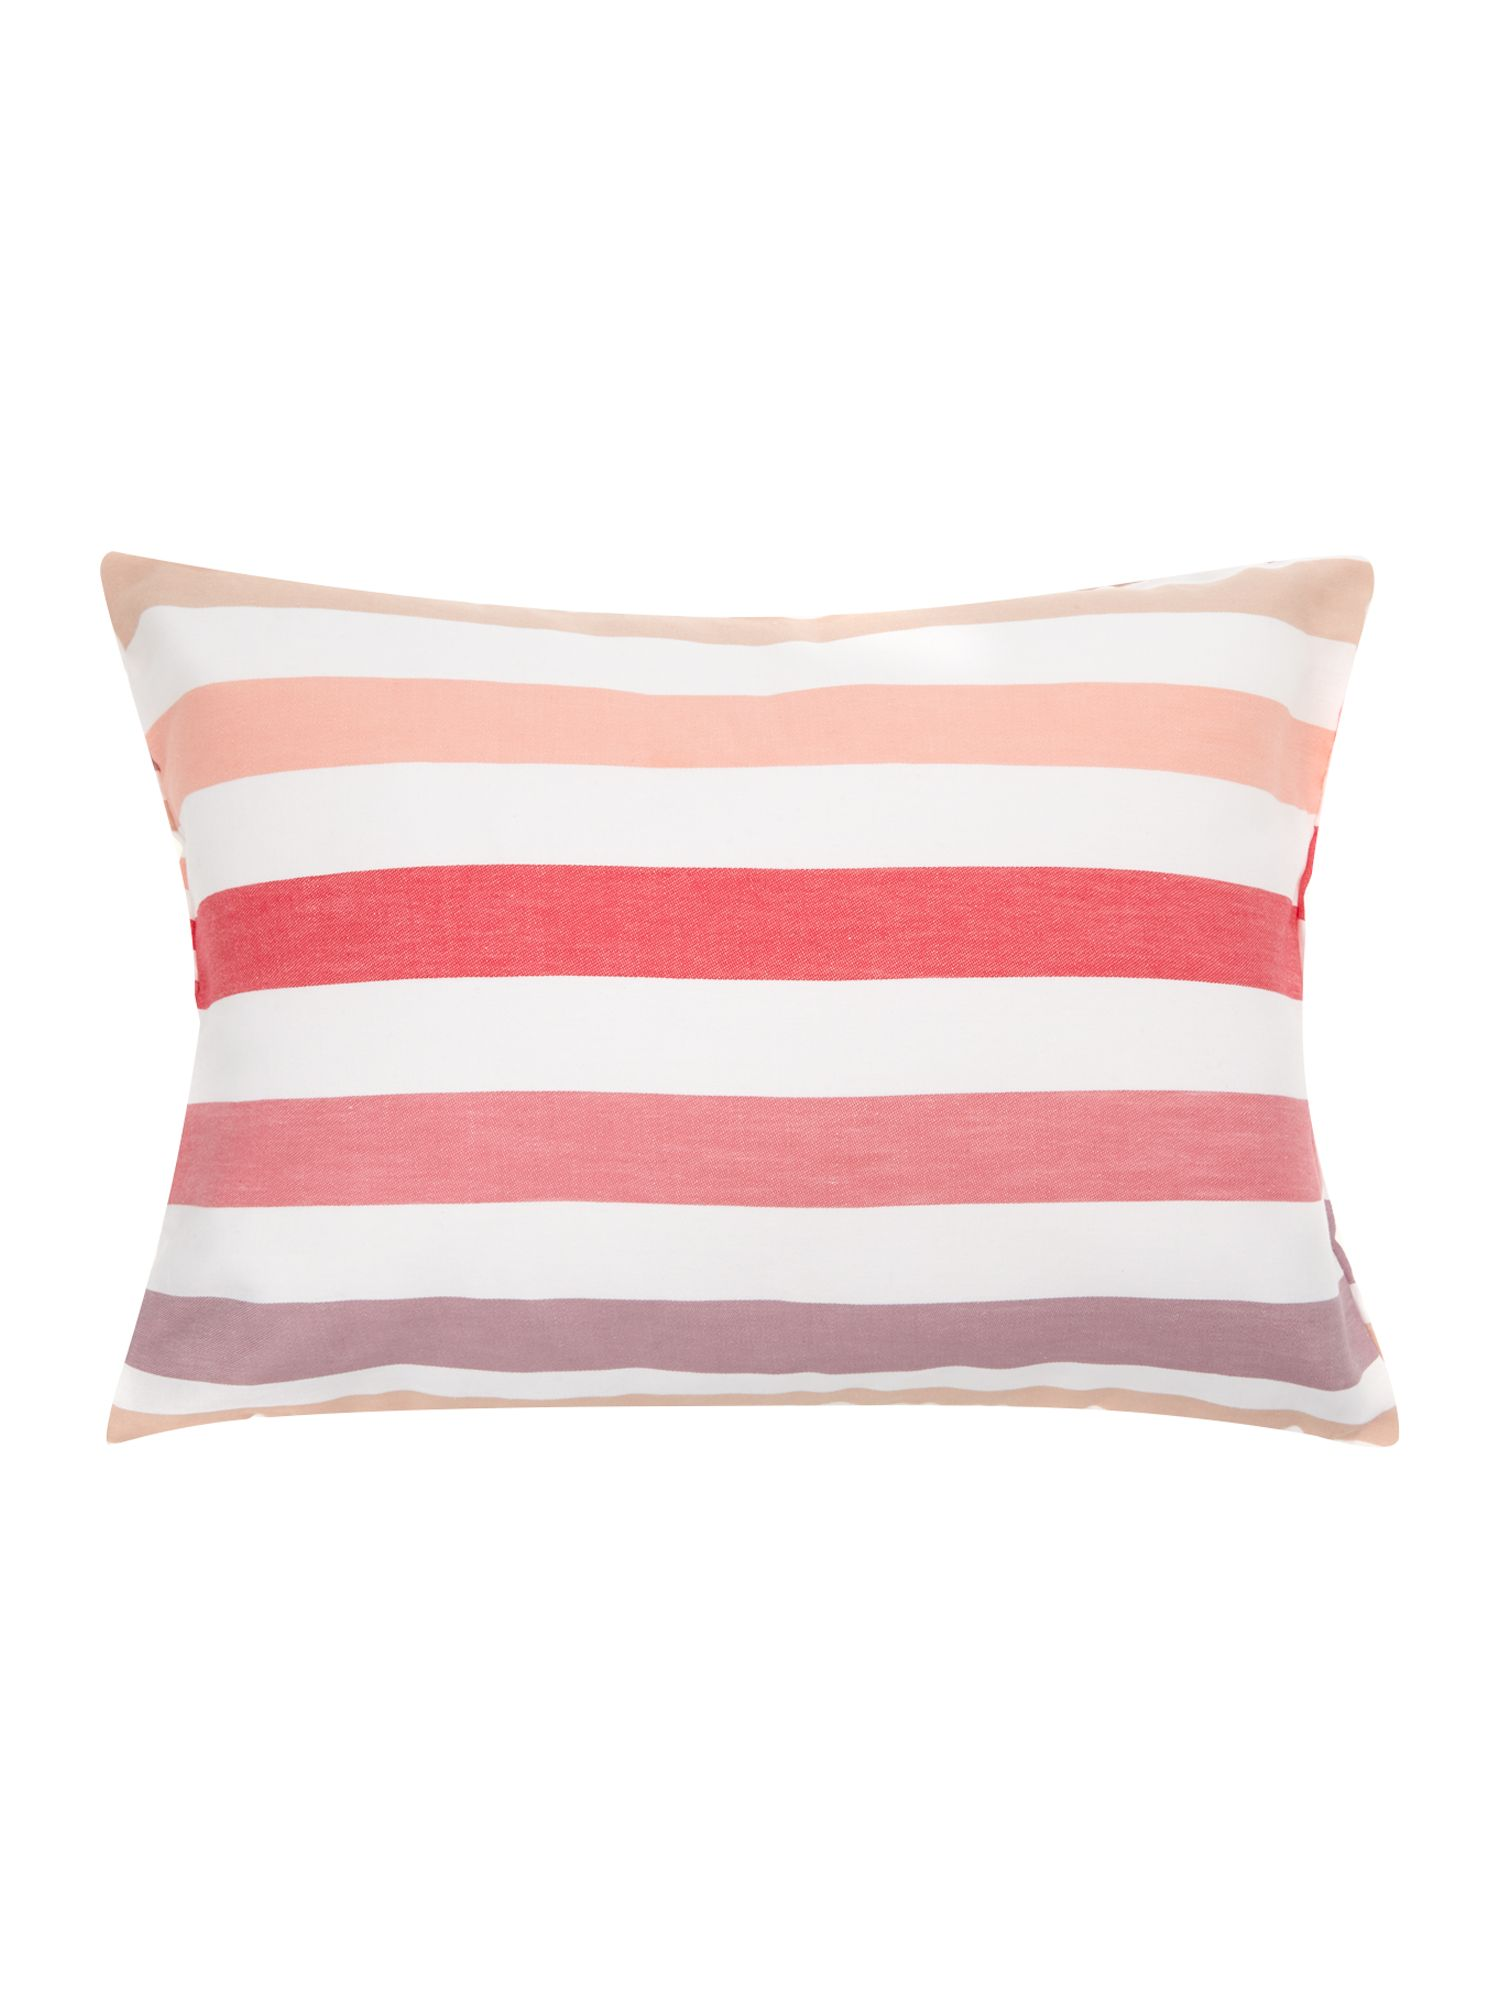 Coco stripe boudior cushion